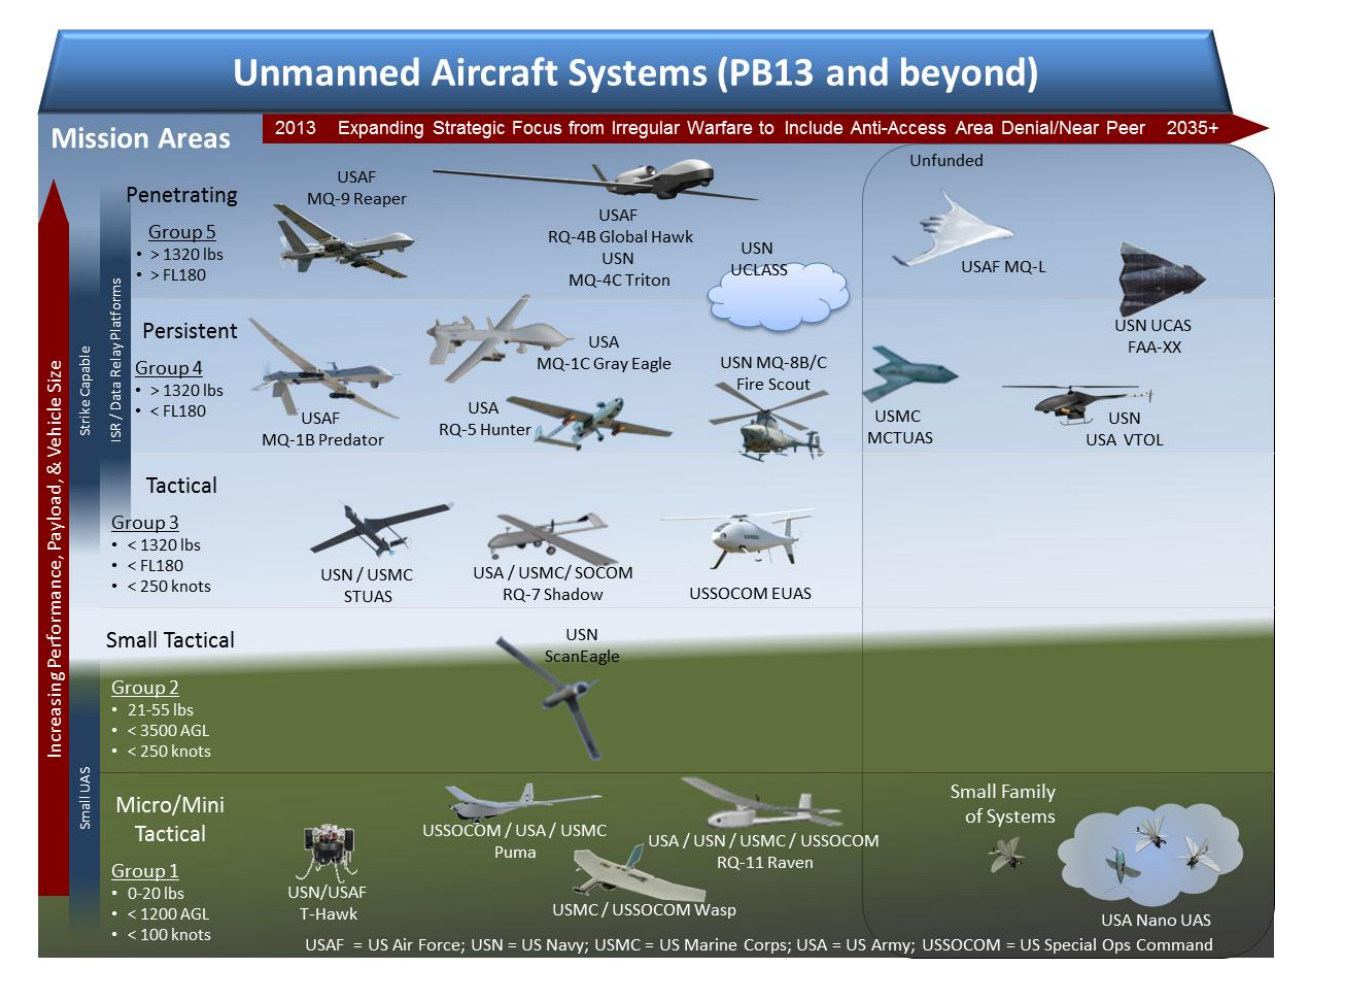 predator reaper drone with Unmanned Aircraft Systems Uas on Watch in addition File MQ 1 Predator silhouette additionally Mq 9 Guardian Gets New Maritime Capability in addition Unmanned Aircraft Systems Uas as well Le Drone Mq 9 Reaper Dit Le Predator.